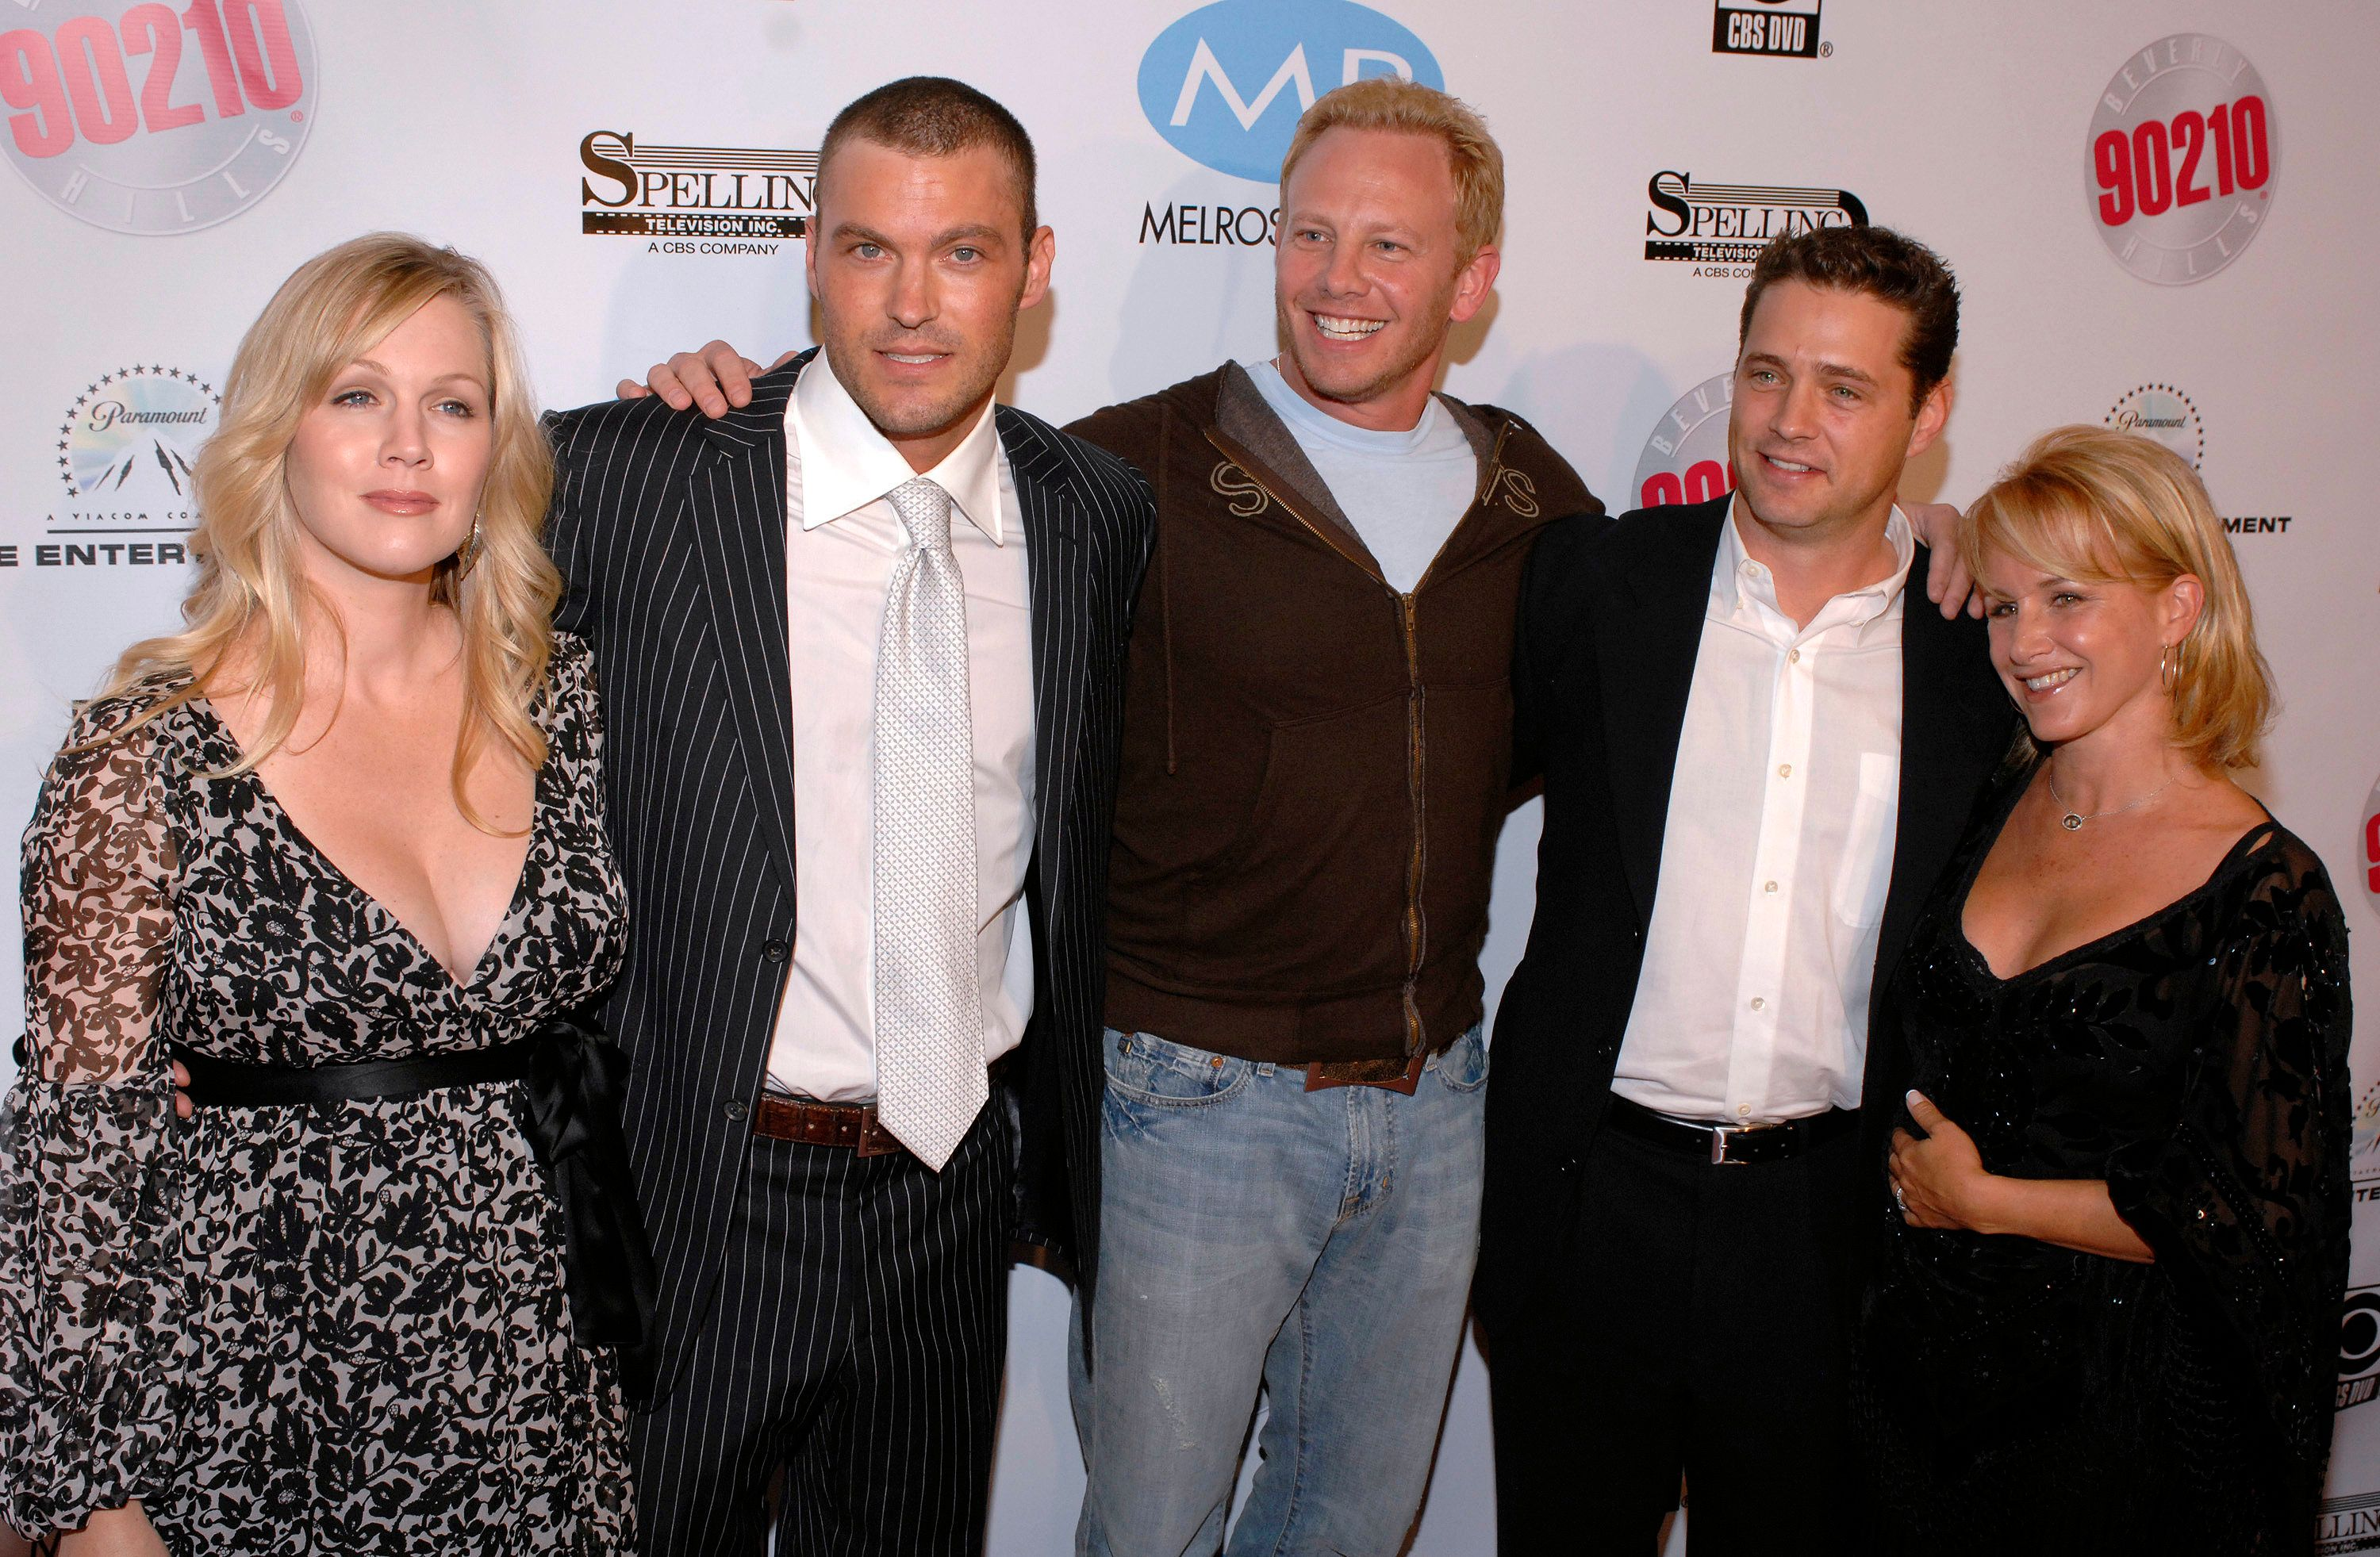 """FILE - In this Nov. 3, 2006, file photo, Beverly Hills 90210 cast members, left to right, Jennie Garth, Brian Austin Green, Ian Ziering, Jason Priestley and Gabrielle Carteris attend the """"Beverly Hills 90210"""" and """"Melrose Place"""" first season DVD launch party  in Beverly Hills, Calif. The original stars of """"Beverly Hills, 90210,"""" are set to return to FOX in a six-episode event series, """"90210."""" (AP Photo/Phil McCarten, File)"""